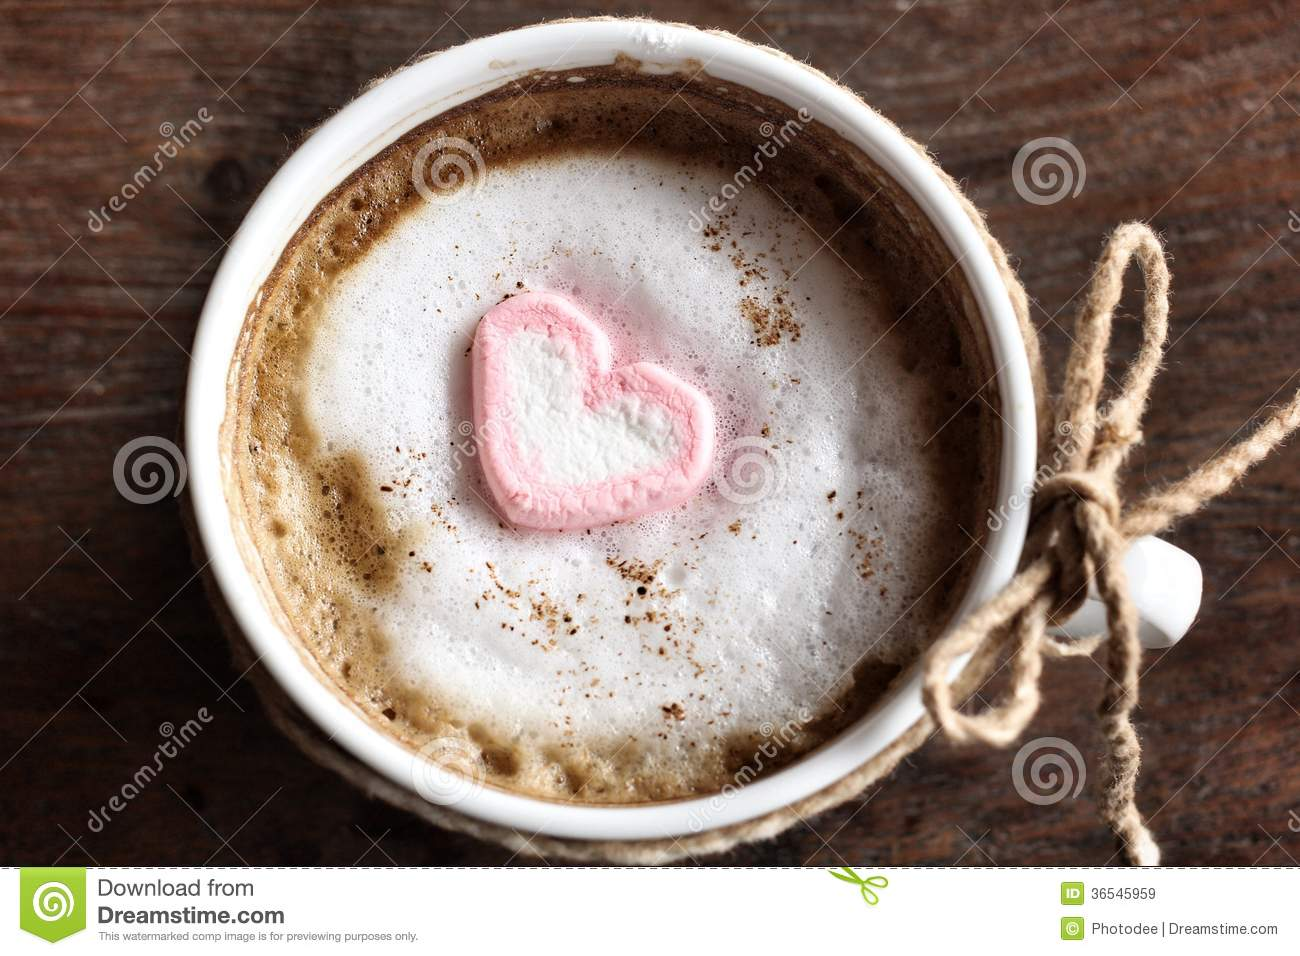 chocolat chaud avec la guimauve de rose de coeur image stock image du closeup vacances 36545959. Black Bedroom Furniture Sets. Home Design Ideas